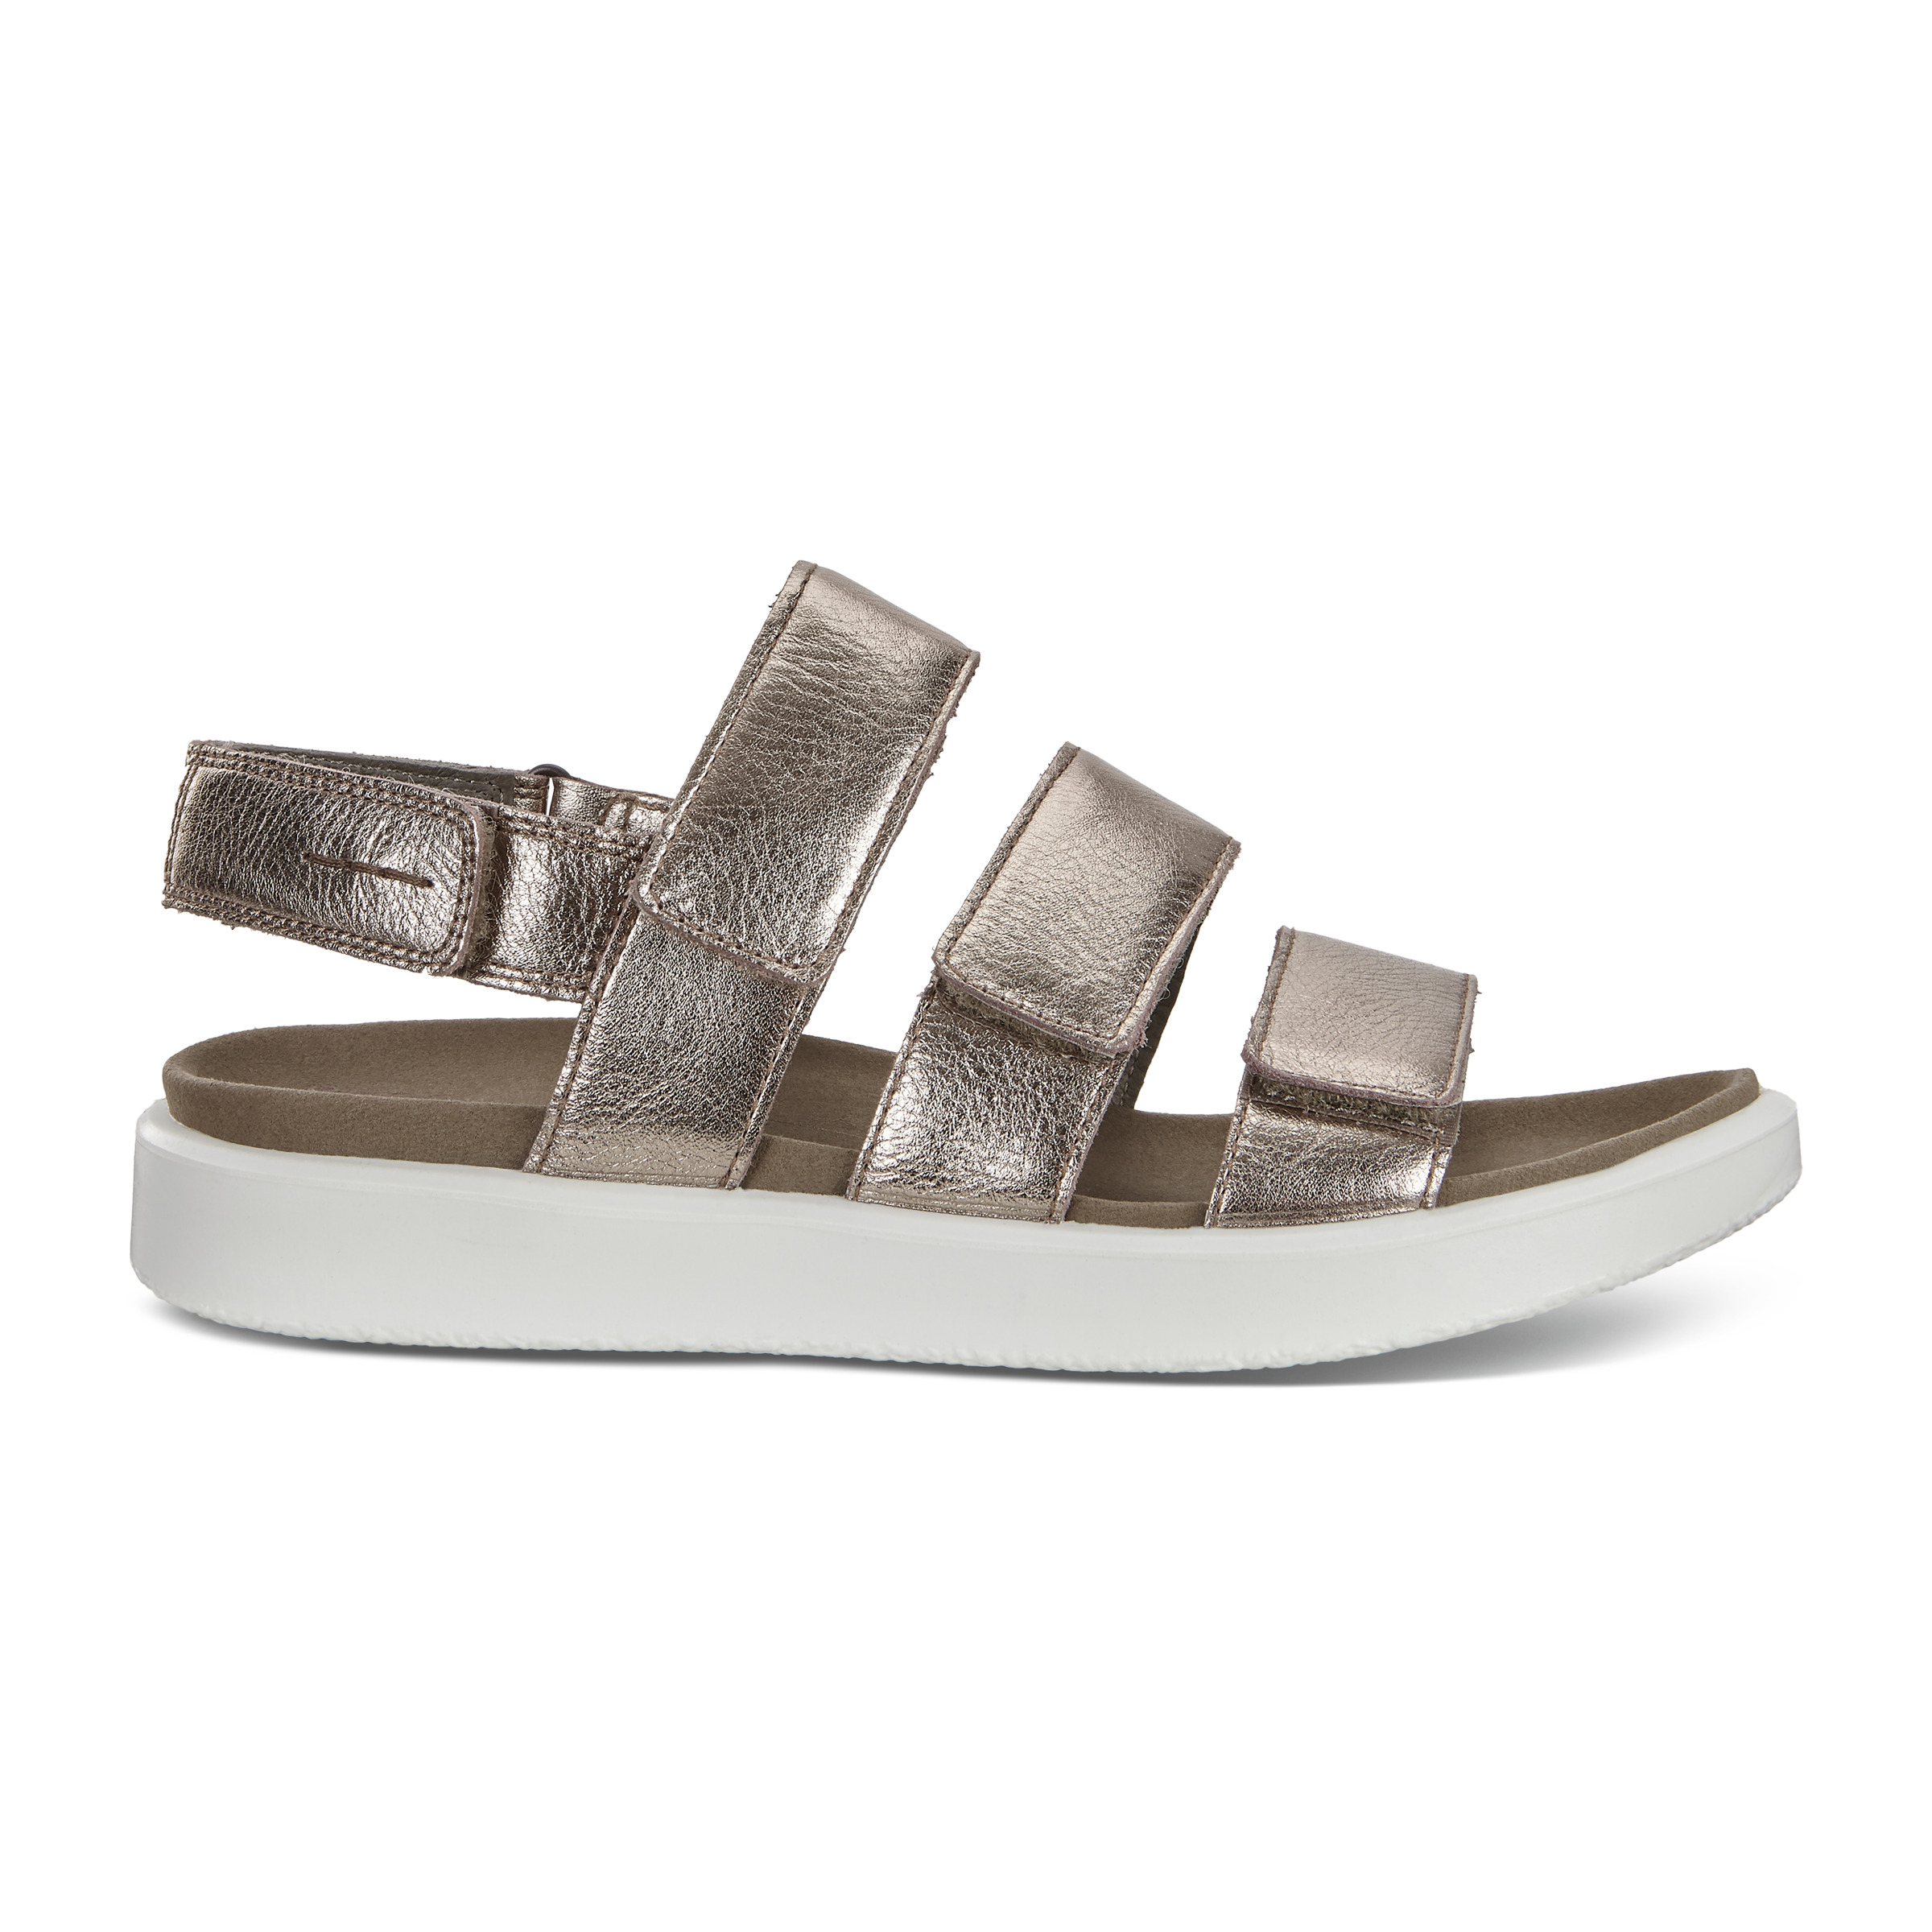 UPC 809704940717 product image for ECCO Flowt W Flat Sandal Size 4-4.5 Warm Grey Metallic | upcitemdb.com